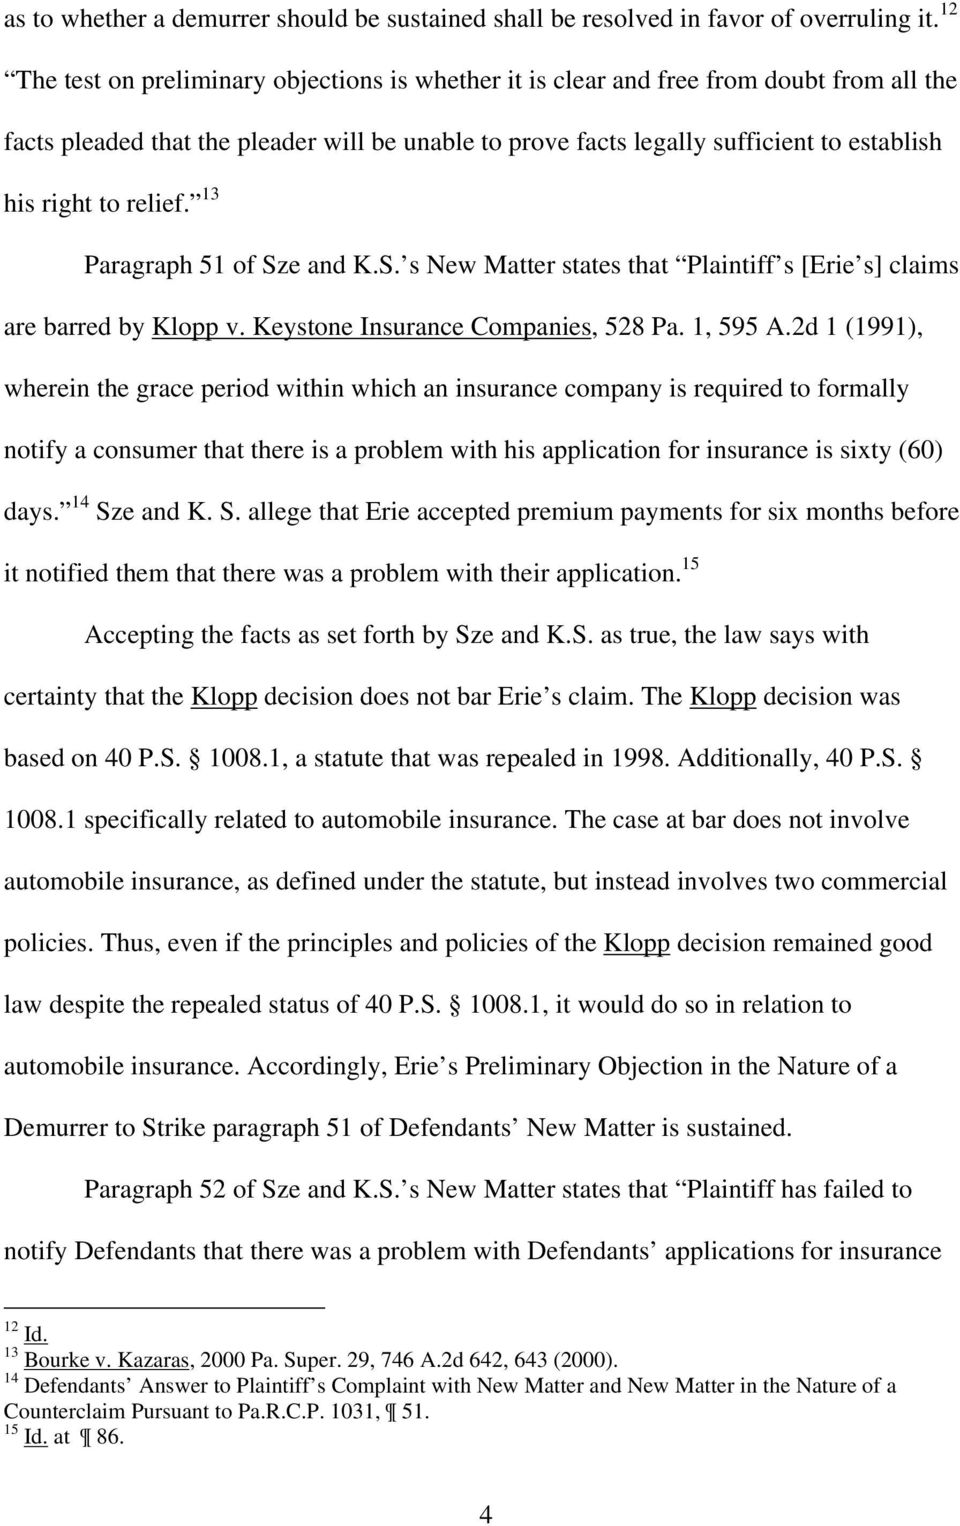 relief. 13 Paragraph 51 of Sze and K.S. s New Matter states that Plaintiff s [Erie s] claims are barred by Klopp v. Keystone Insurance Companies, 528 Pa. 1, 595 A.